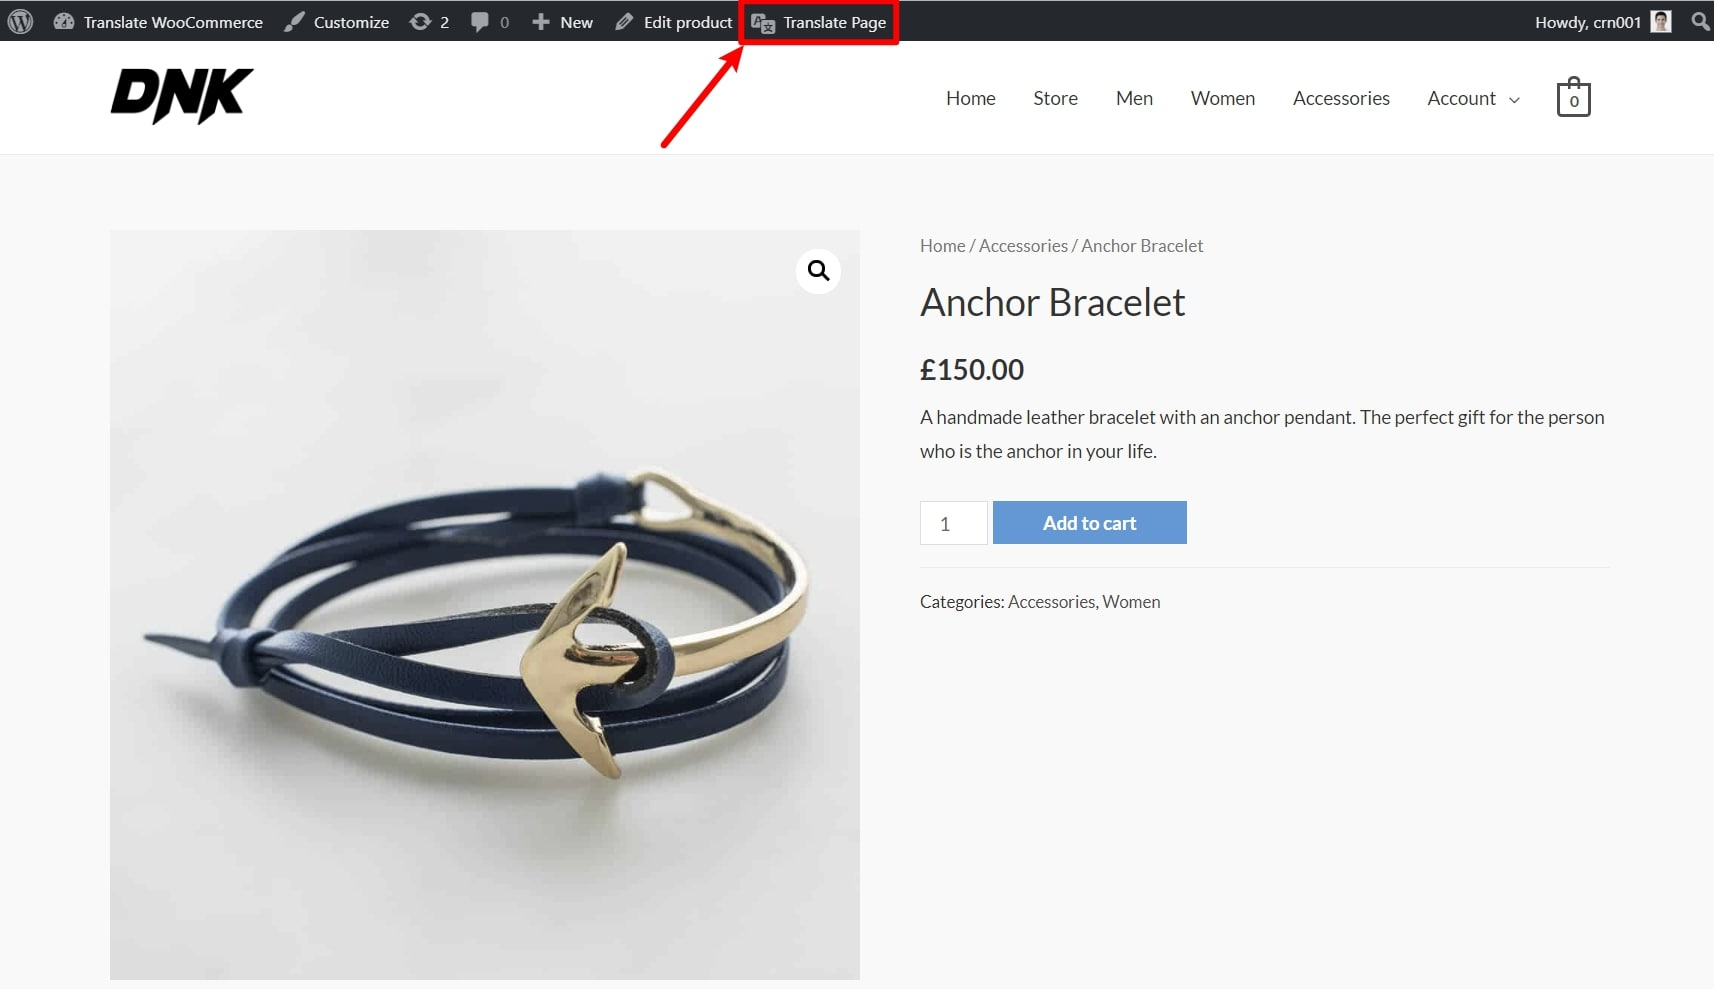 How to access WooCommerce translation editor